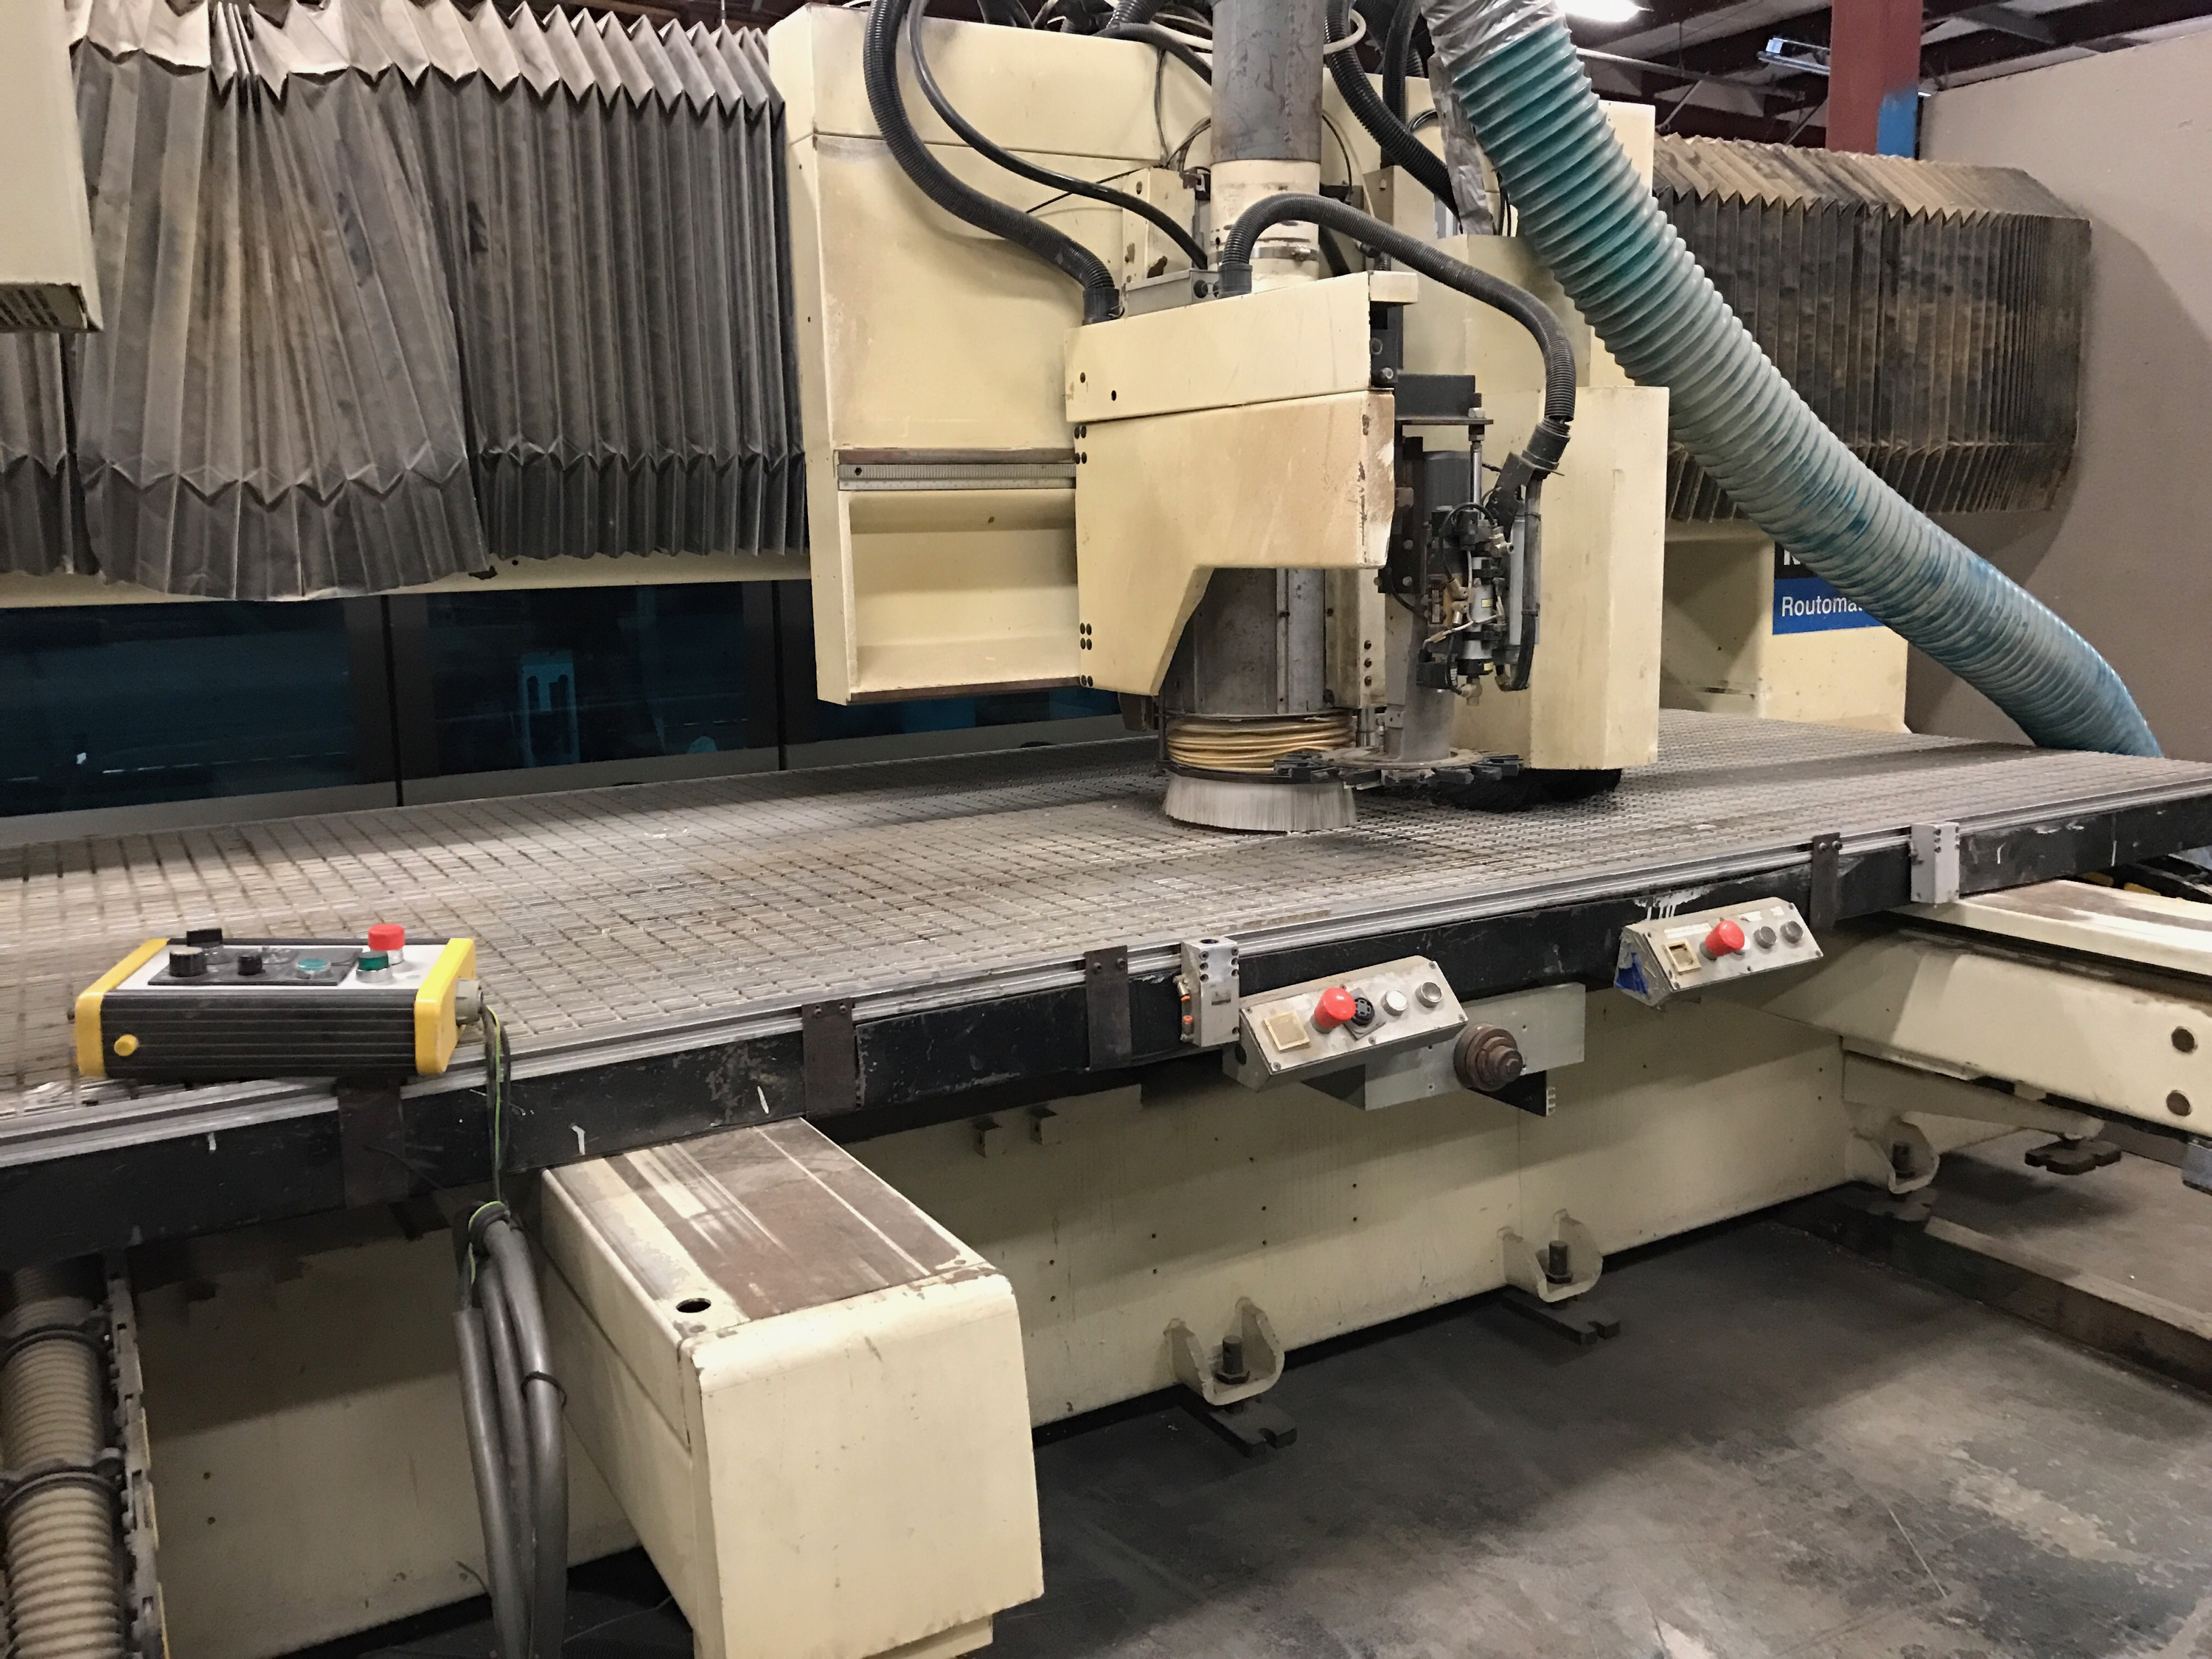 Lot 10 - SCM ROUTOMAT 5x10 CNC ROUTER W/ VACUUM PUMPS - upgraded to win 7 computer